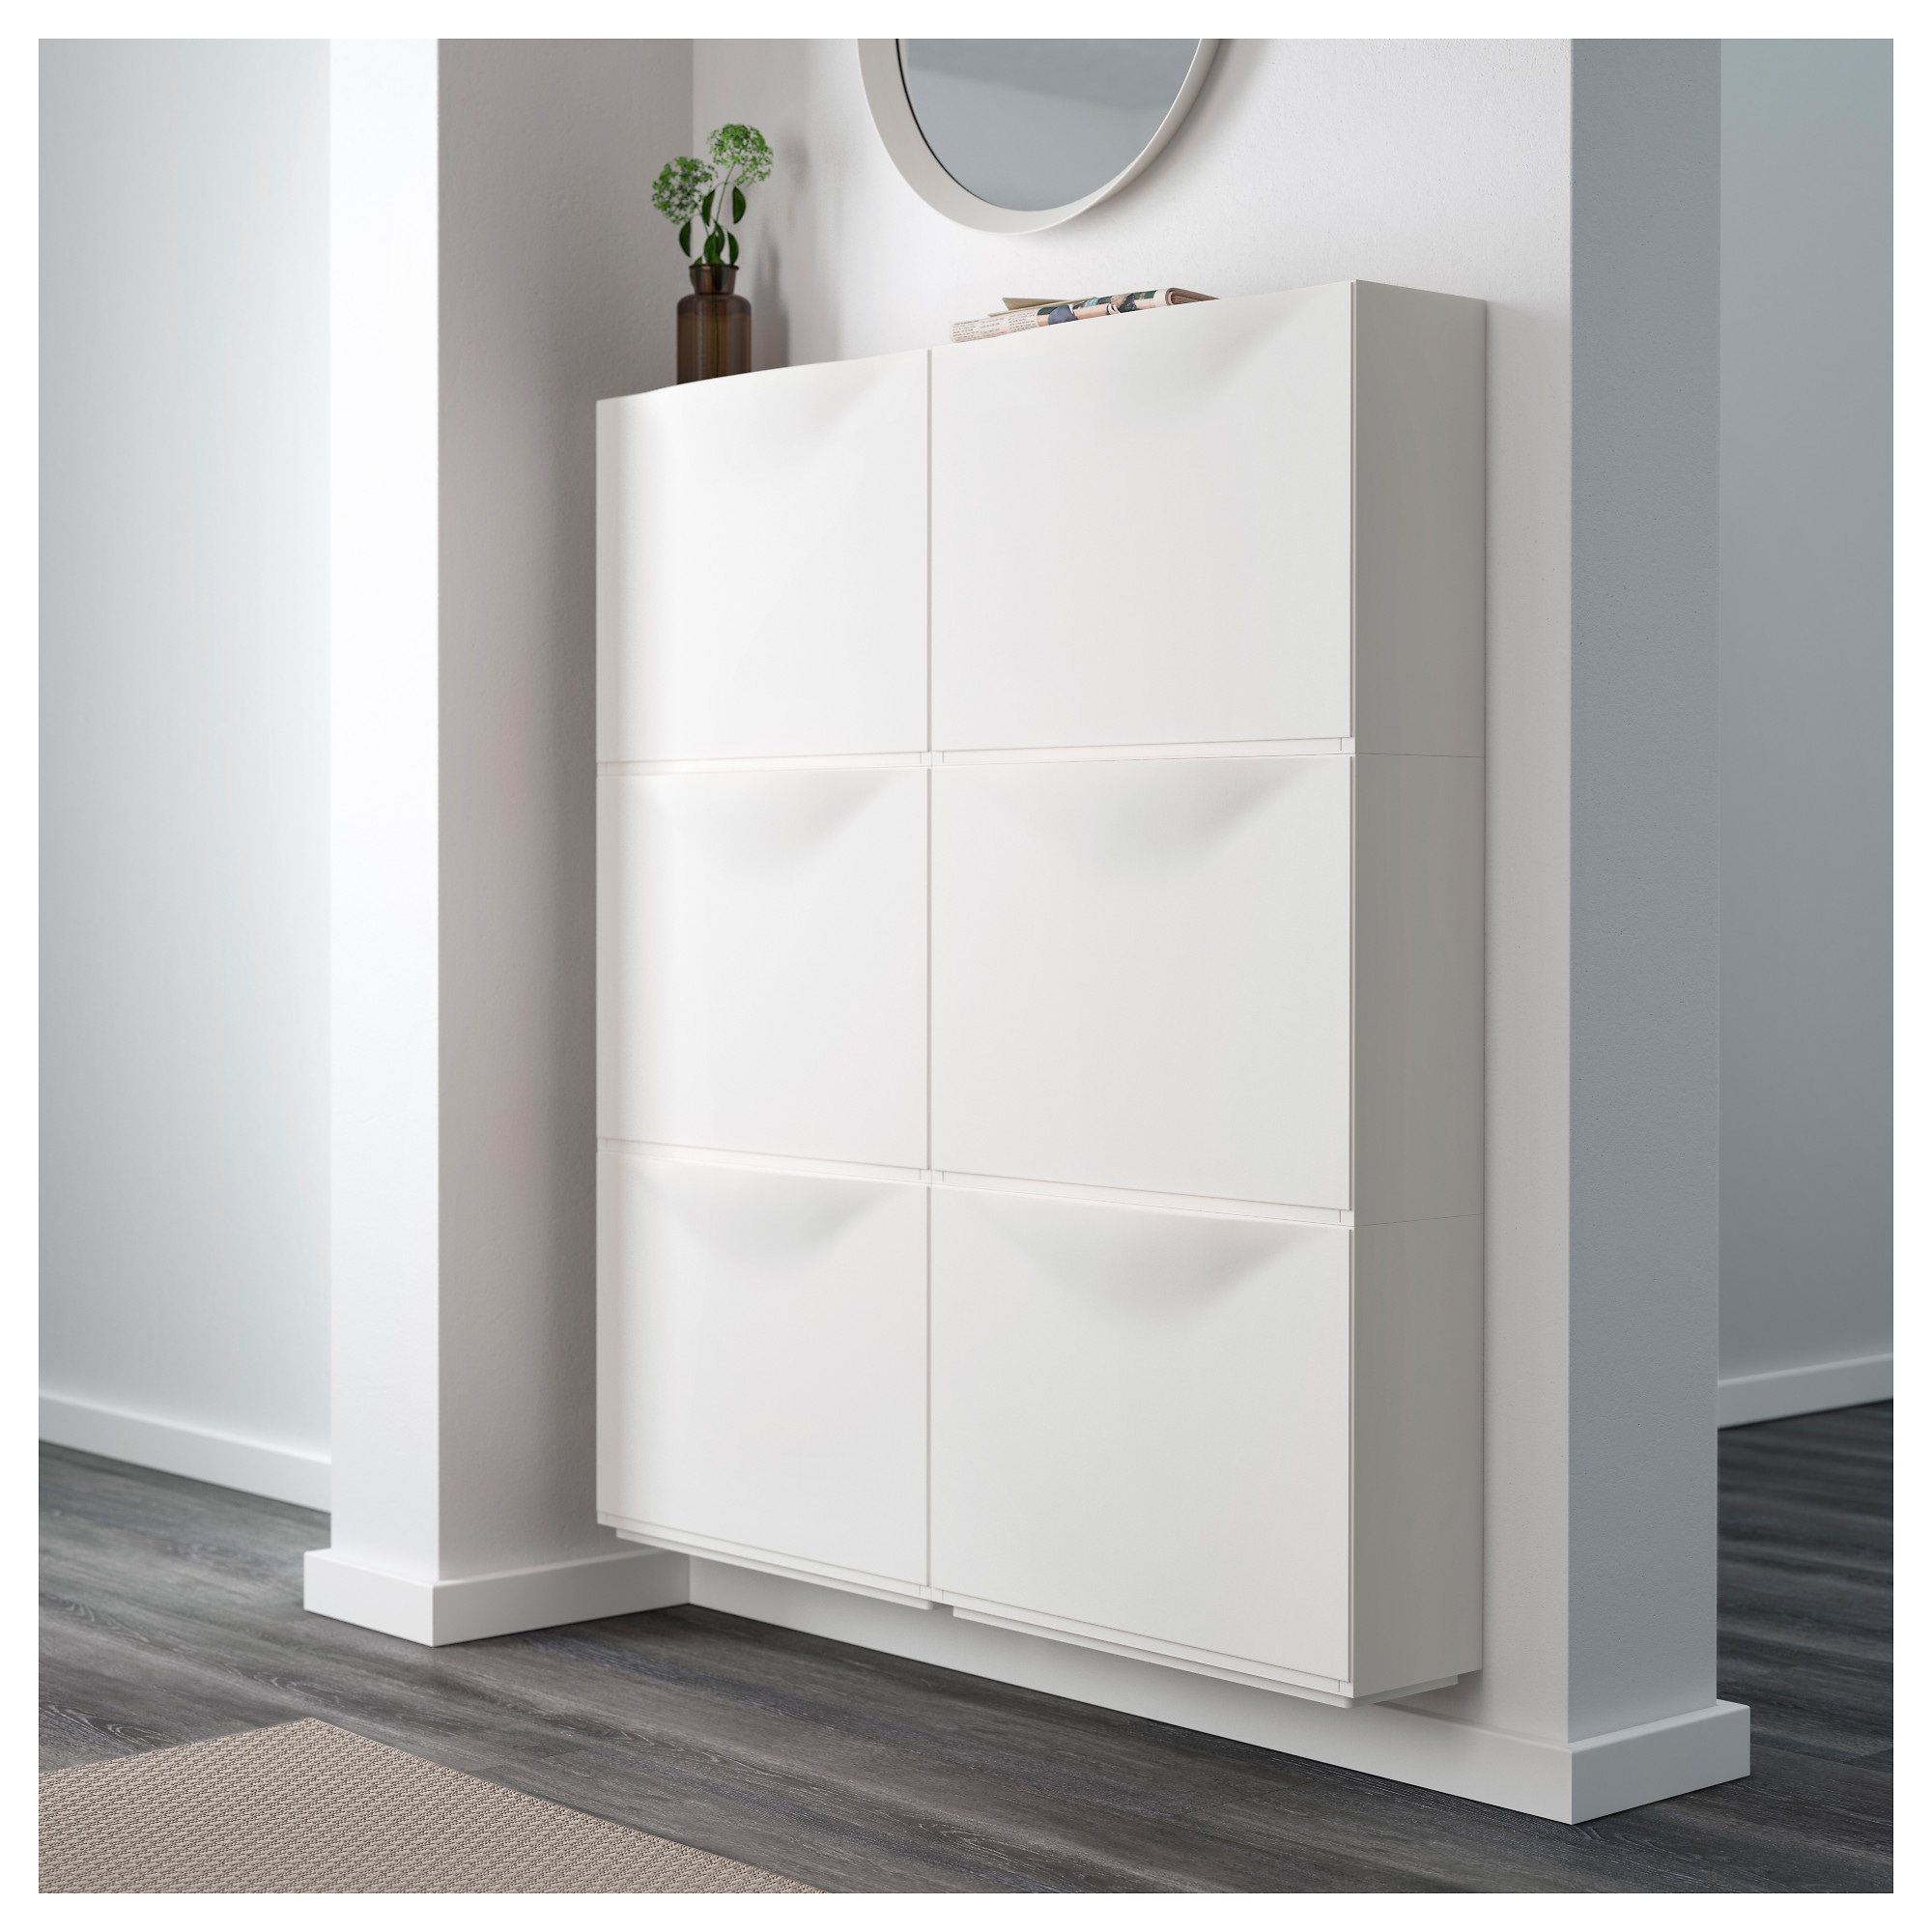 Design Shoe Stand Ikea trones shoestorage cabinet white ikea